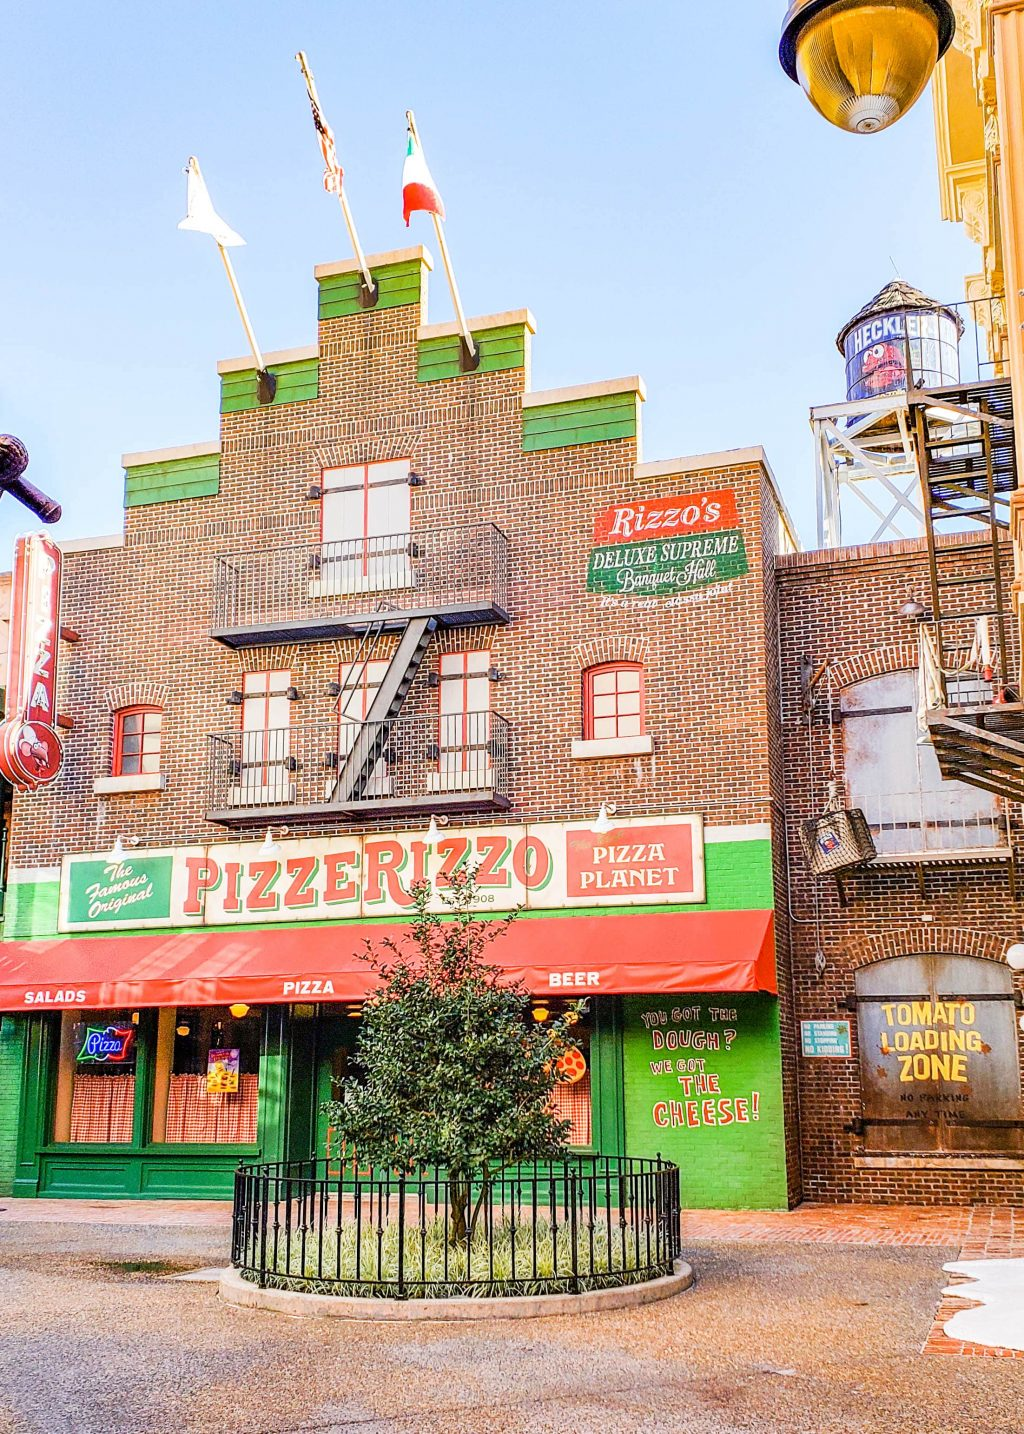 PizzeRizzo at Disney's Hollywood Studios. It is a fire escape, a green wall, and a tree in front.